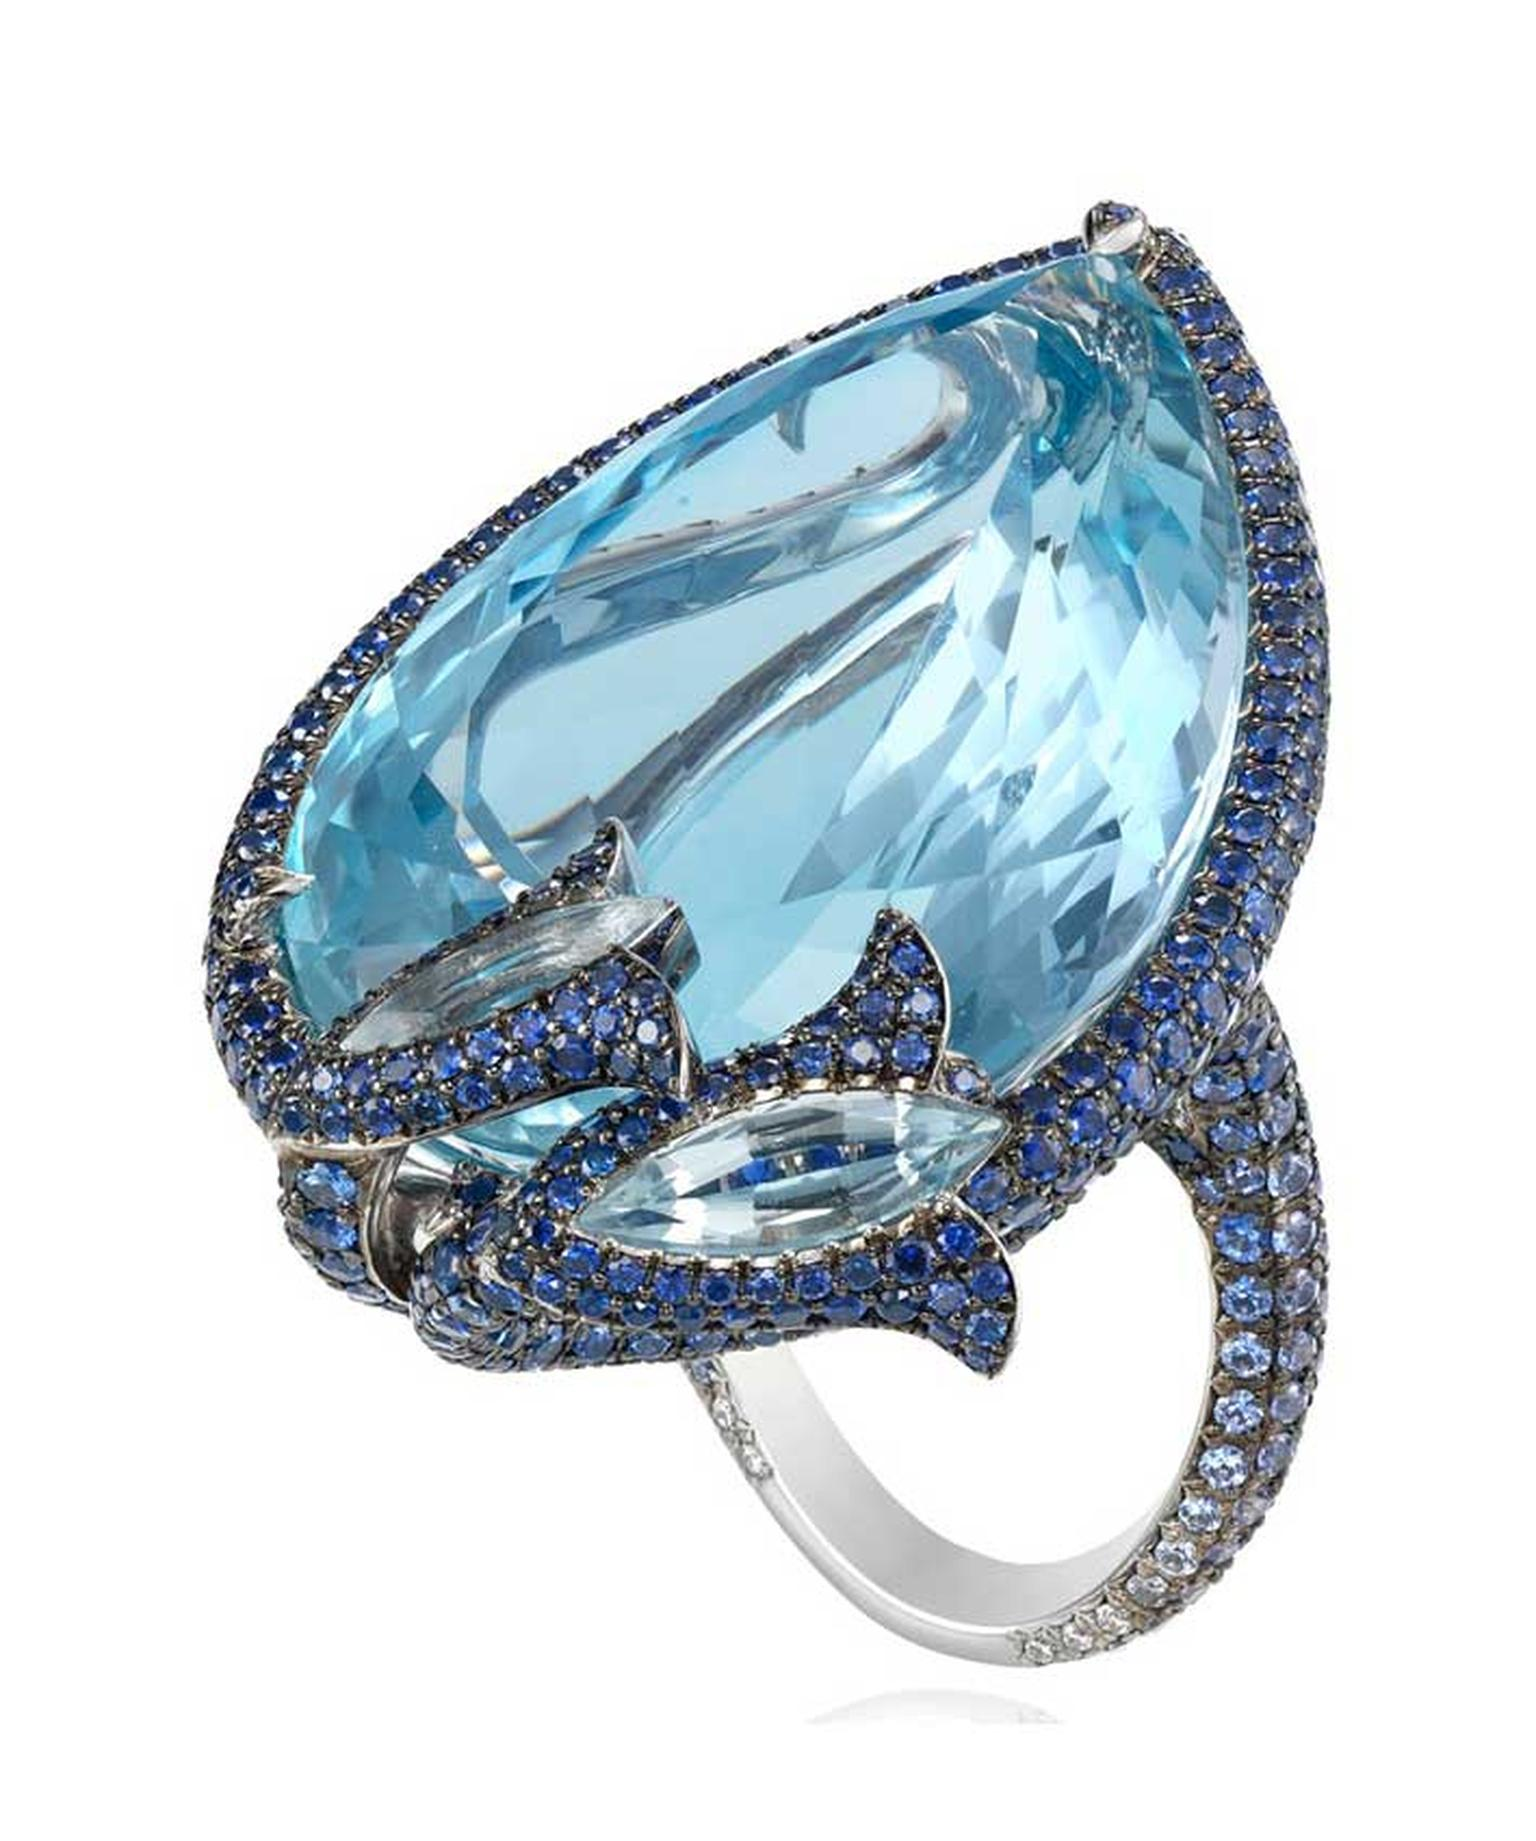 The Cannes aquamarine ring from Chopard's Red Carpet collection features a pear-shaped aquamarine, diamonds and sapphires.